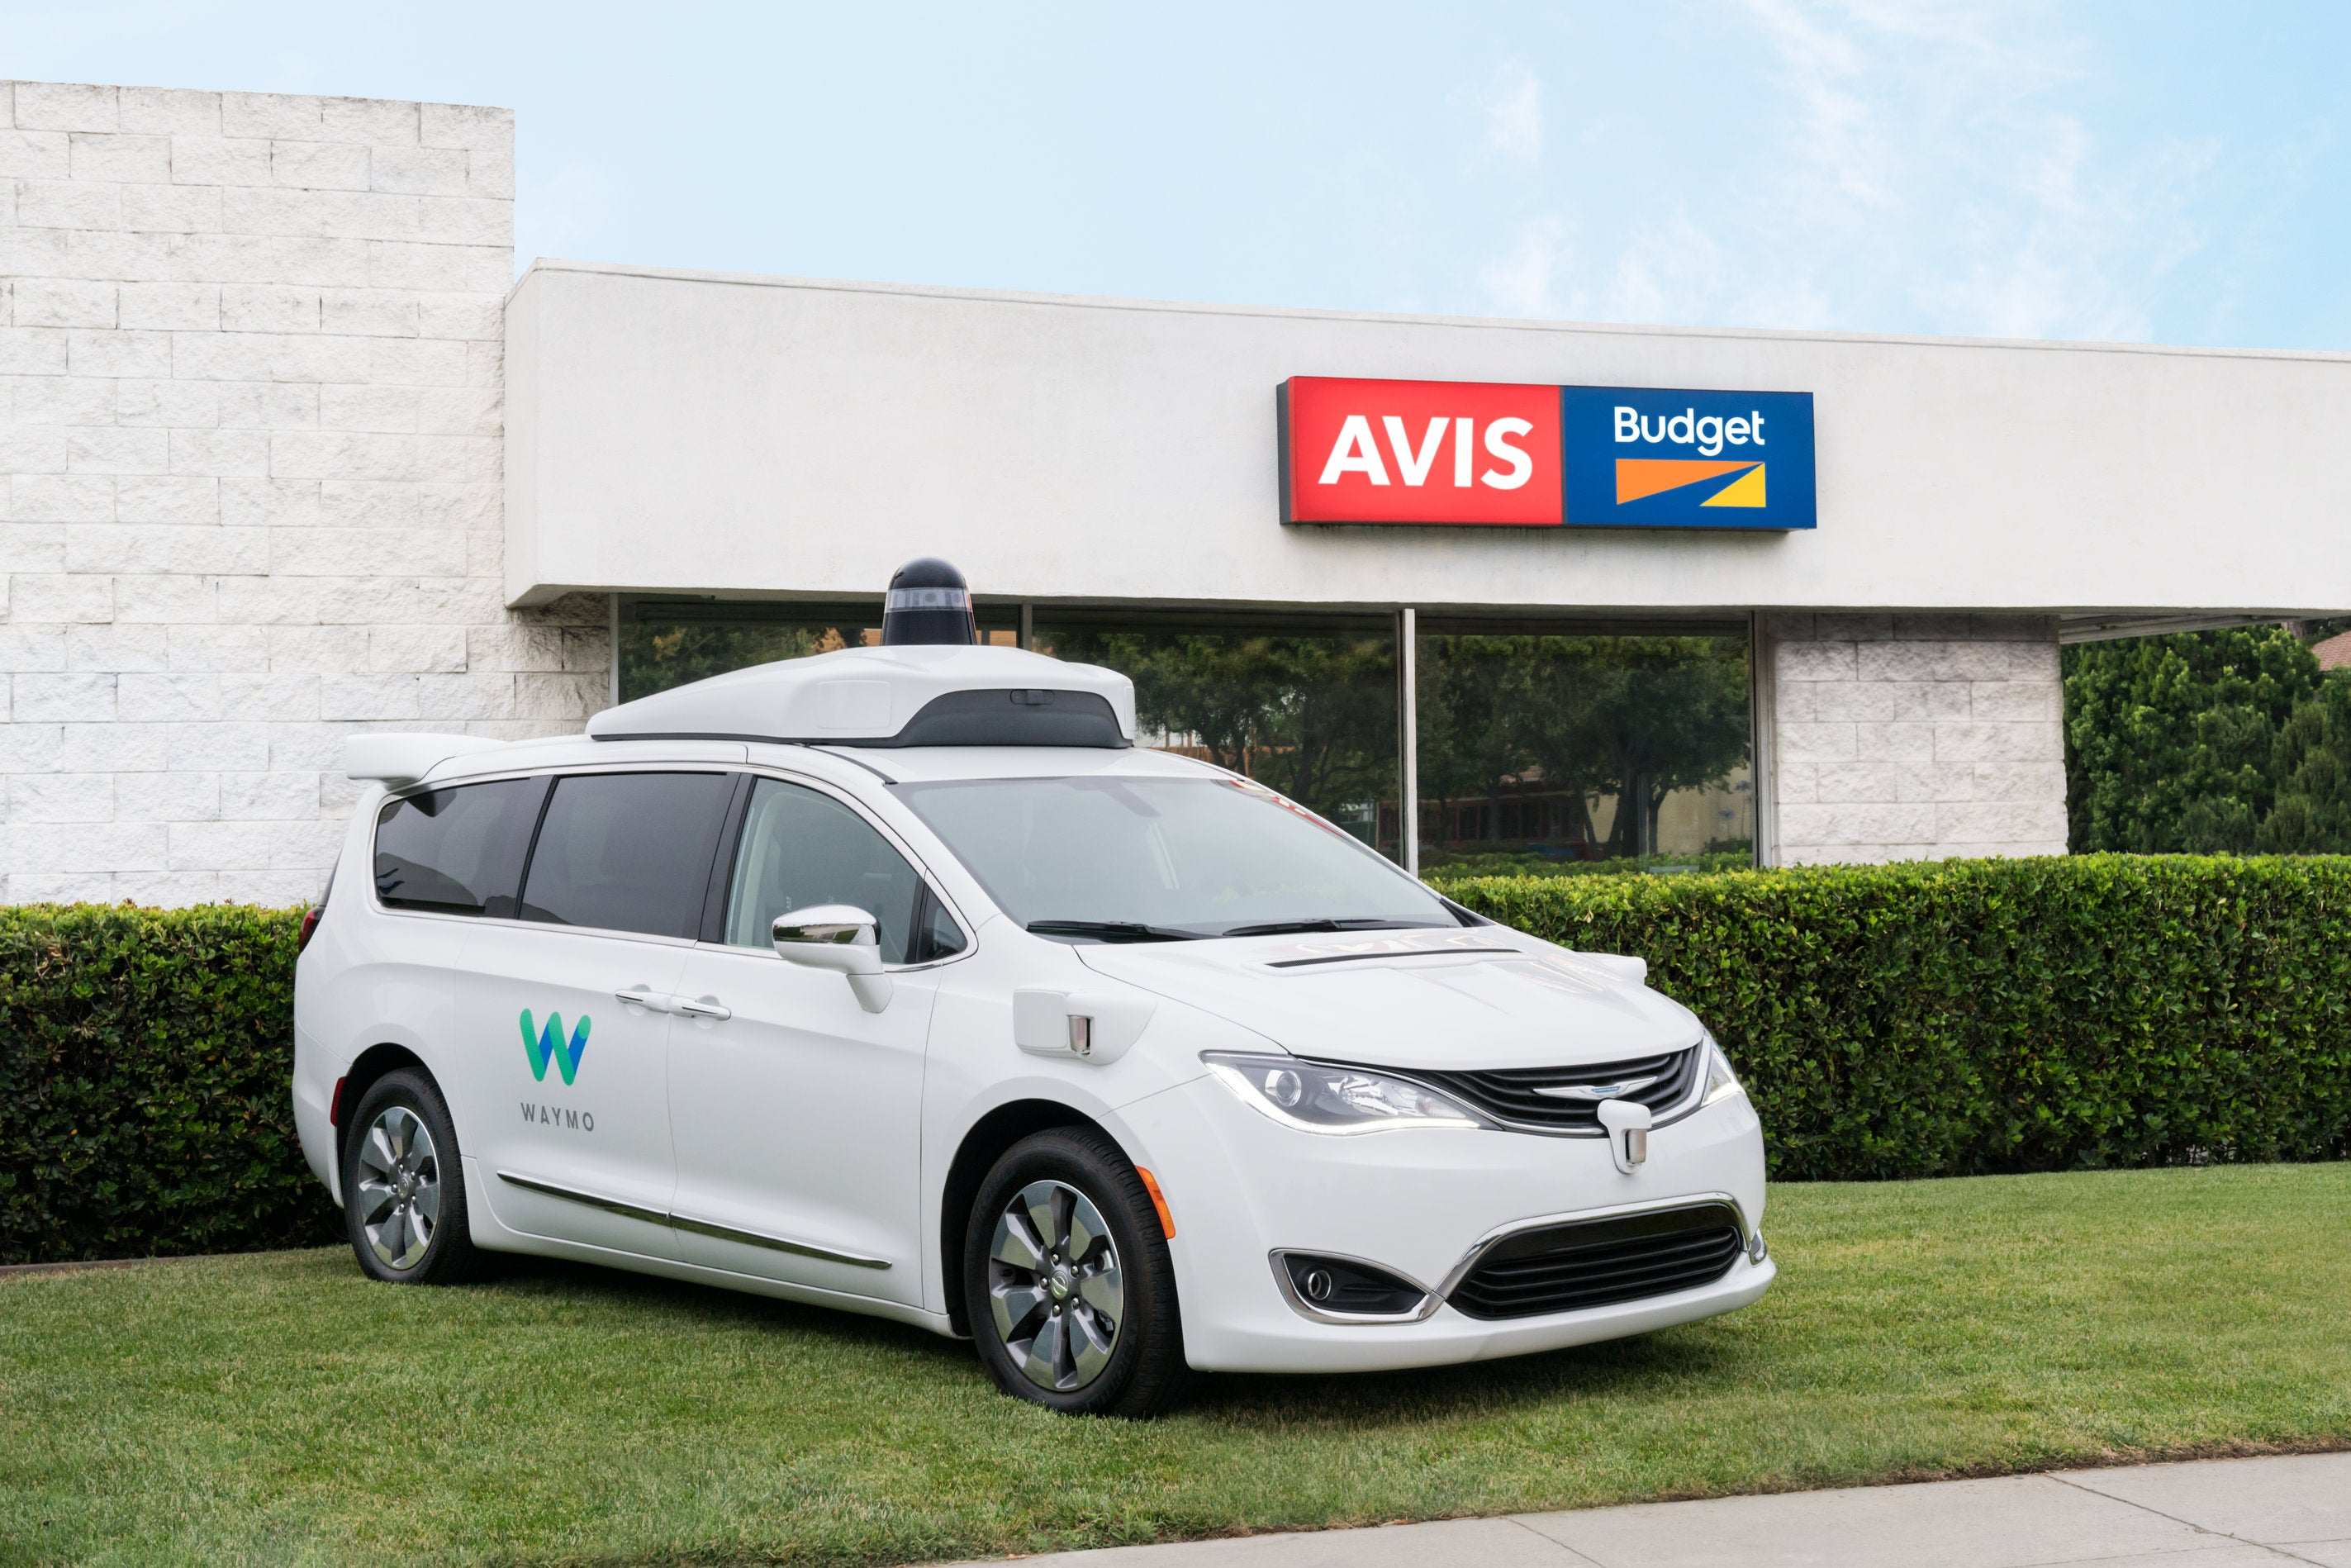 What S Next For Avis Budget Group In The Connected Car Space The